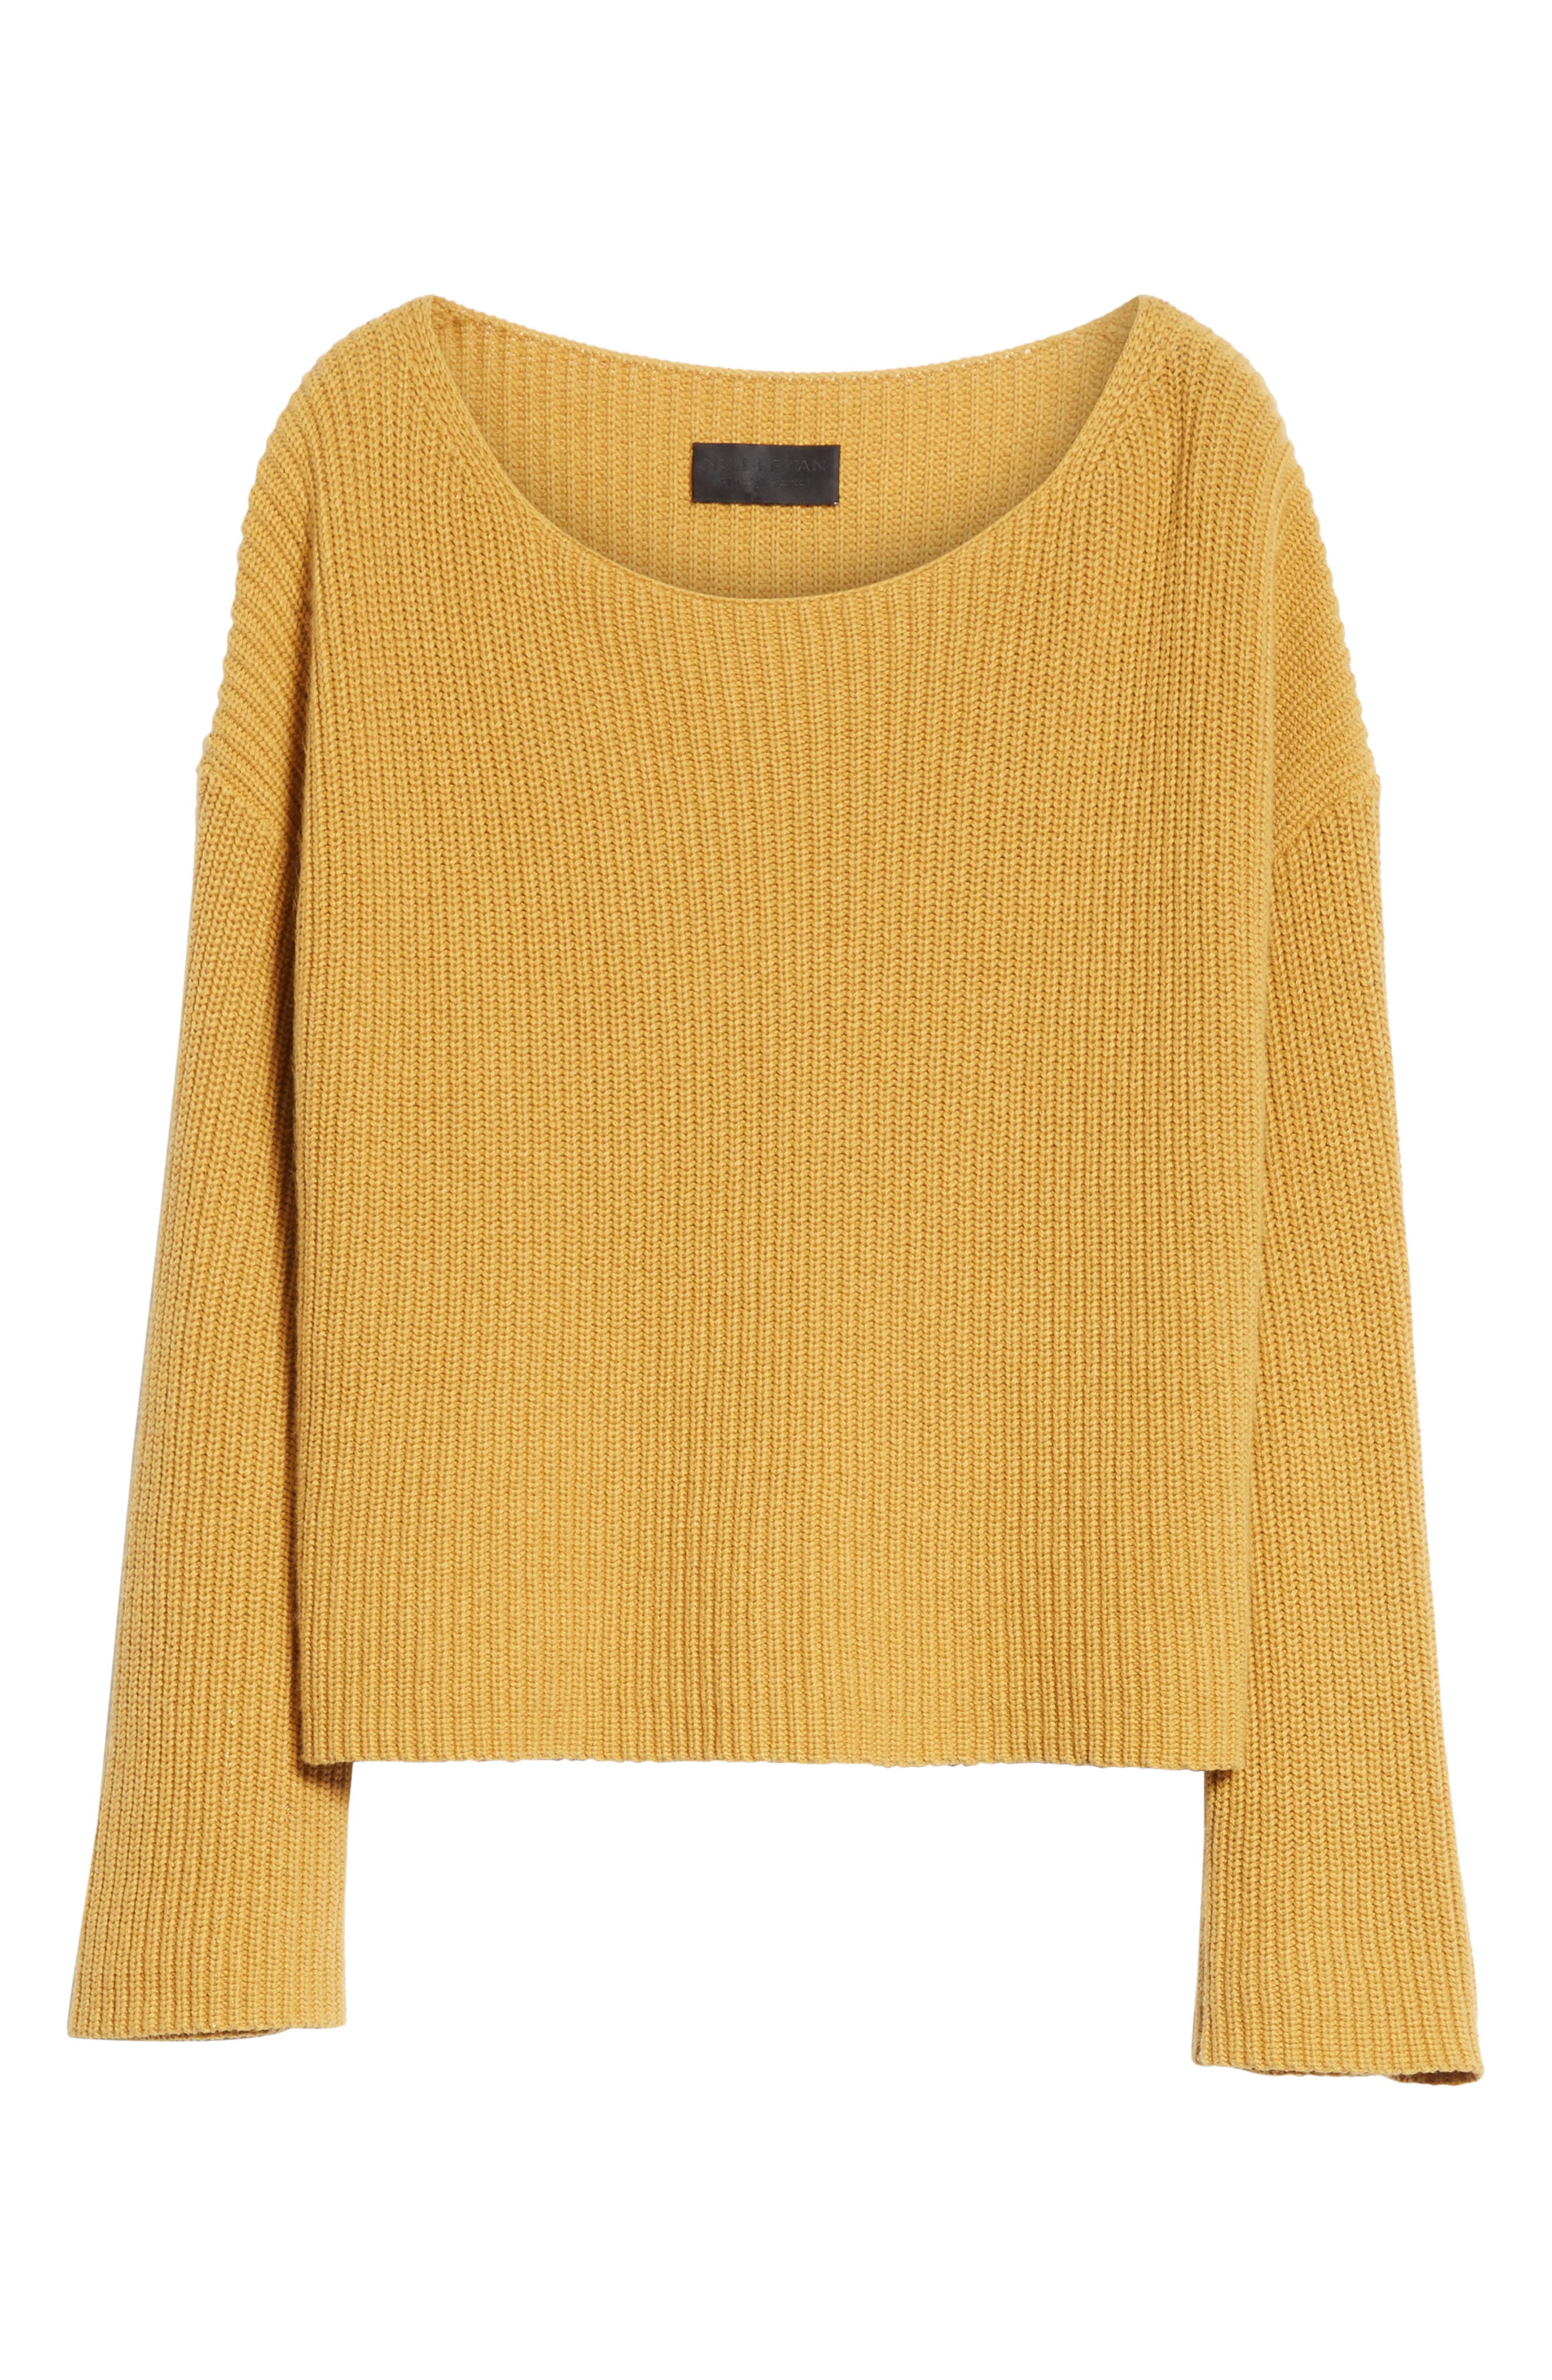 Martindale Ribbed Cotton, Cashmere & Silk Sweater,                             Alternate thumbnail 6, color,                             701